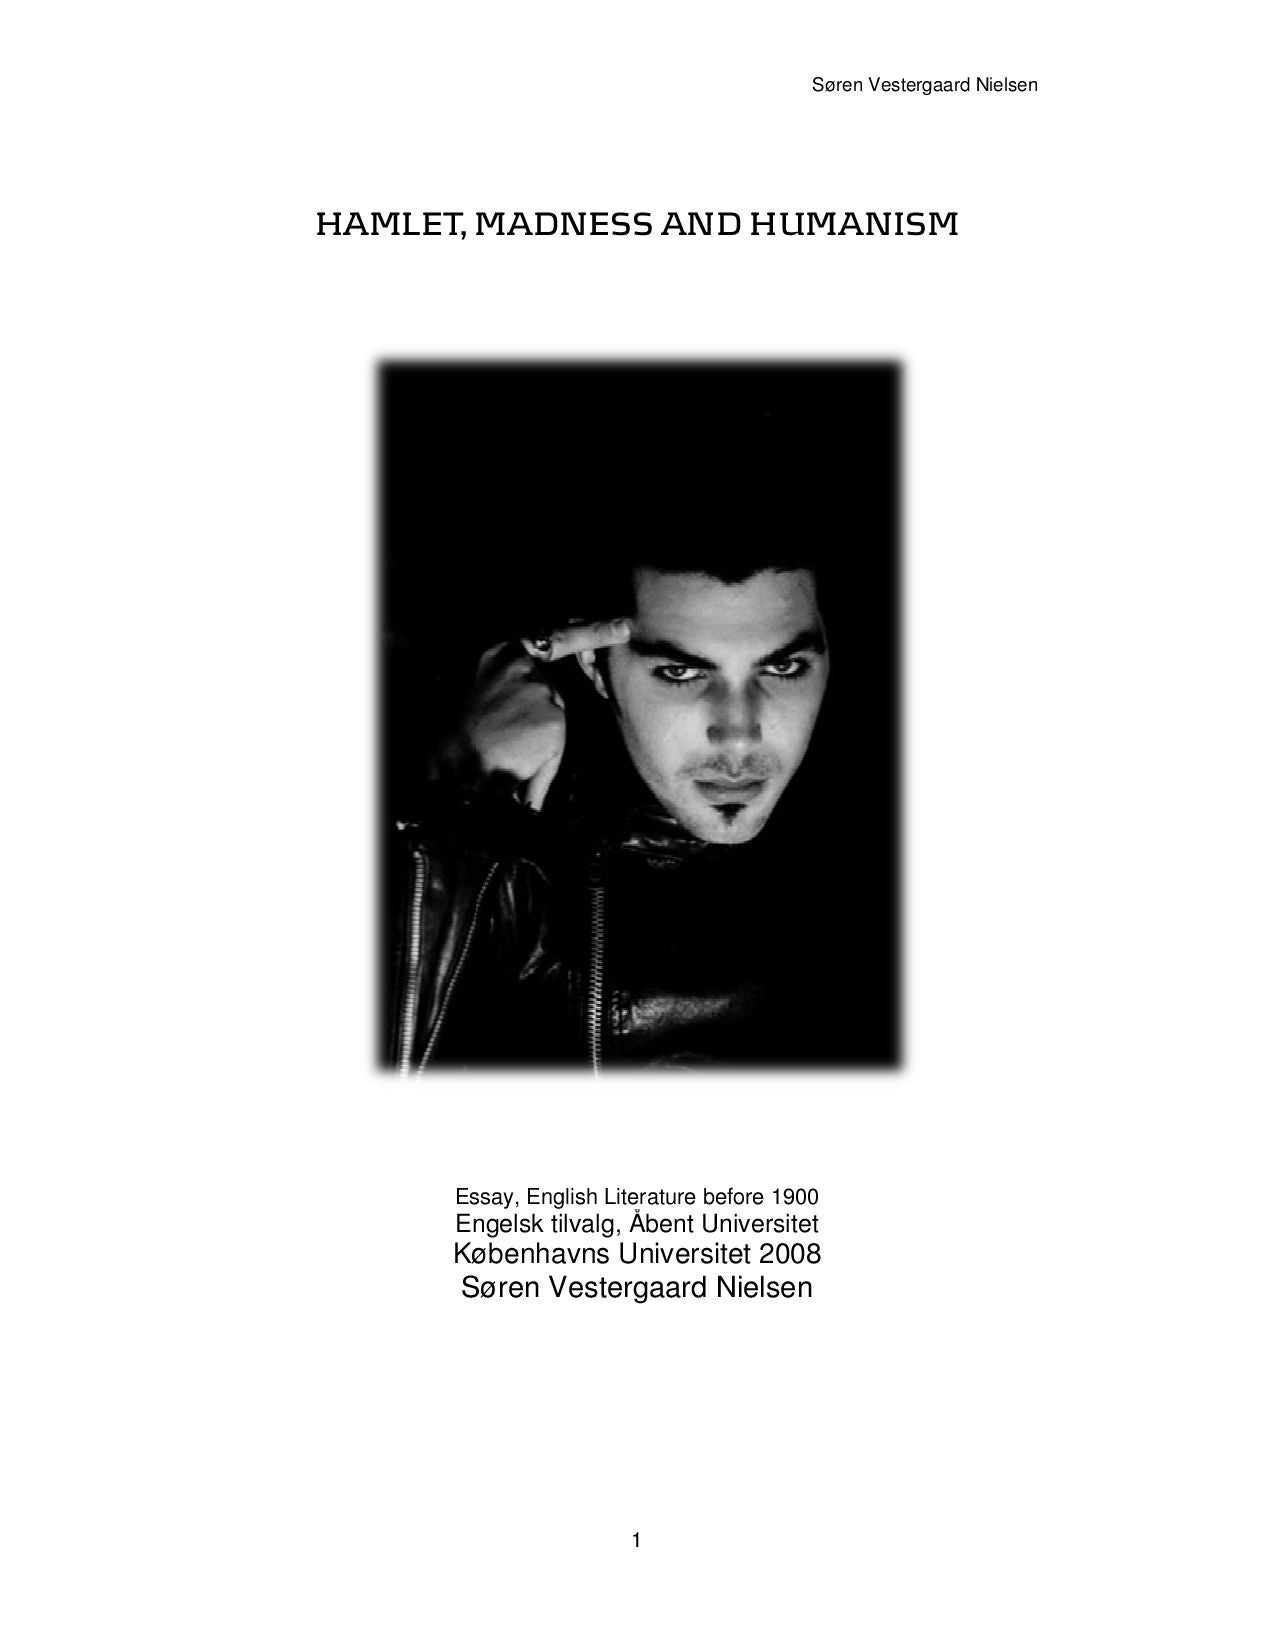 Hamlet part 1 an introduction to elizabethan theater 2 essay